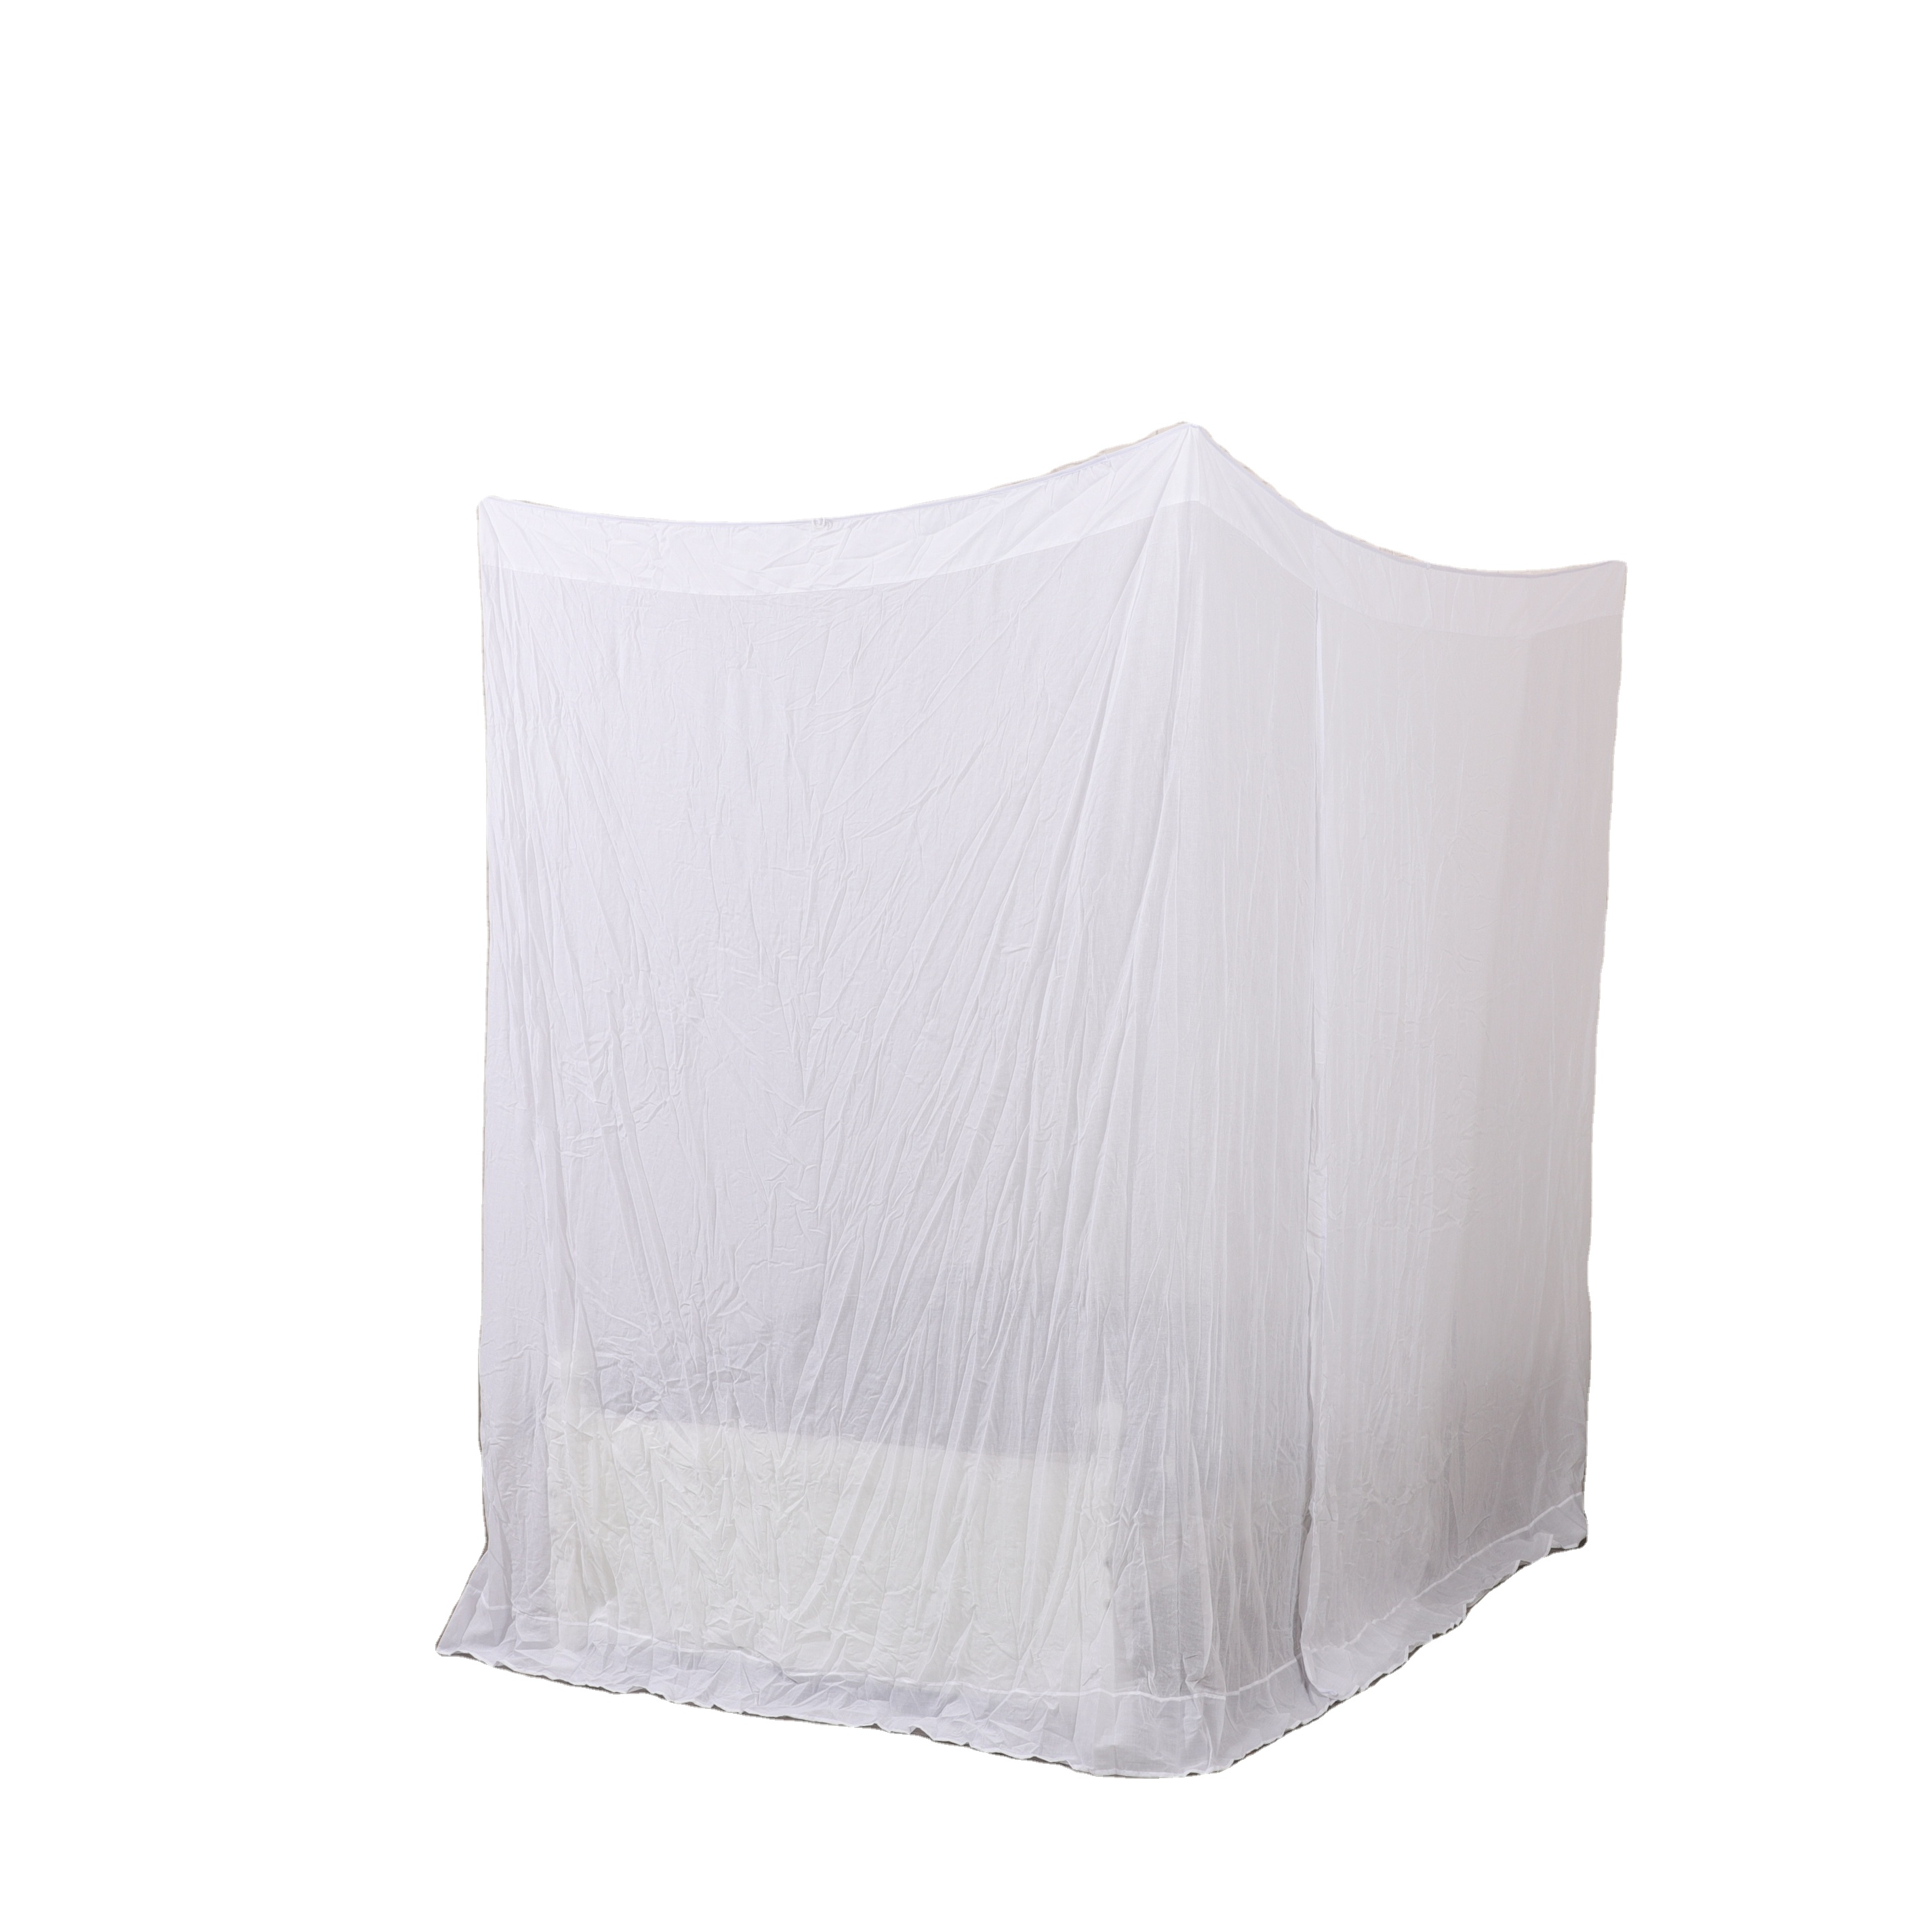 Mosquito NET Bed Canopy Bed of All Sizes Net Easy Care Machine Washable Cotton Mosquito Netting